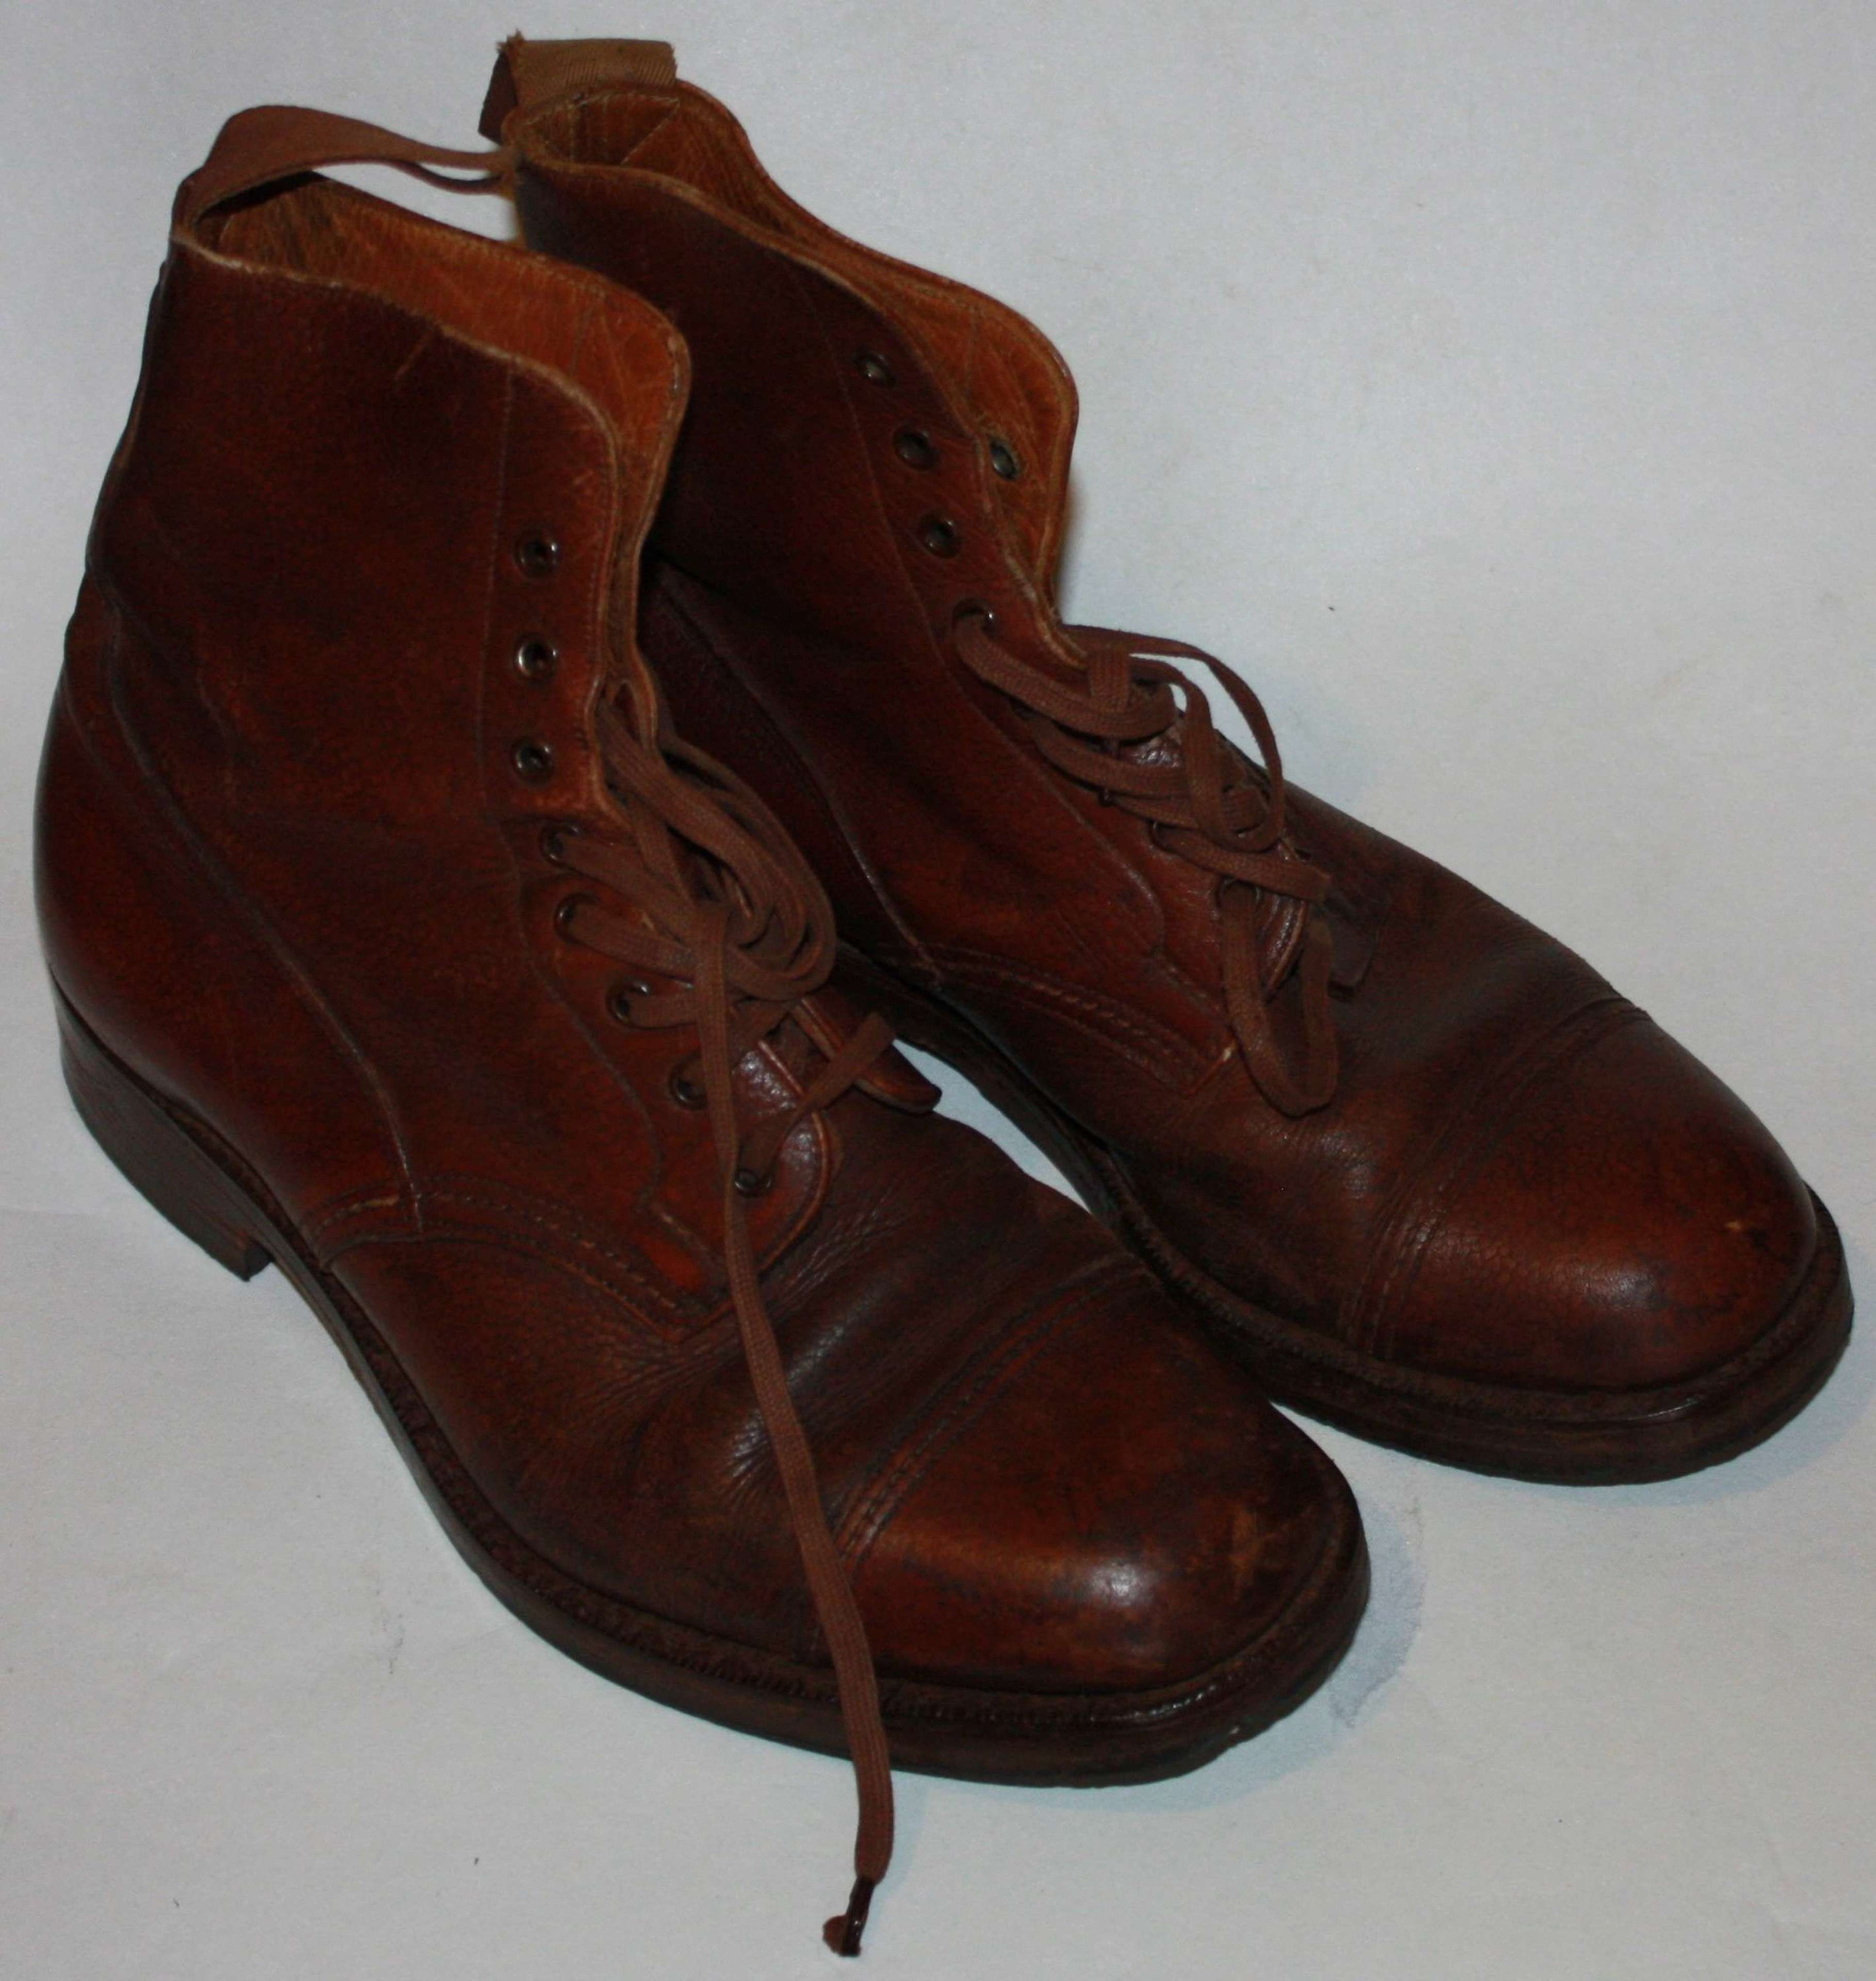 A GOOD PAIR OF OFFICERS 1944 DATED BROWN BOOTS SIZE 7 MADE BY WAUKEEZI